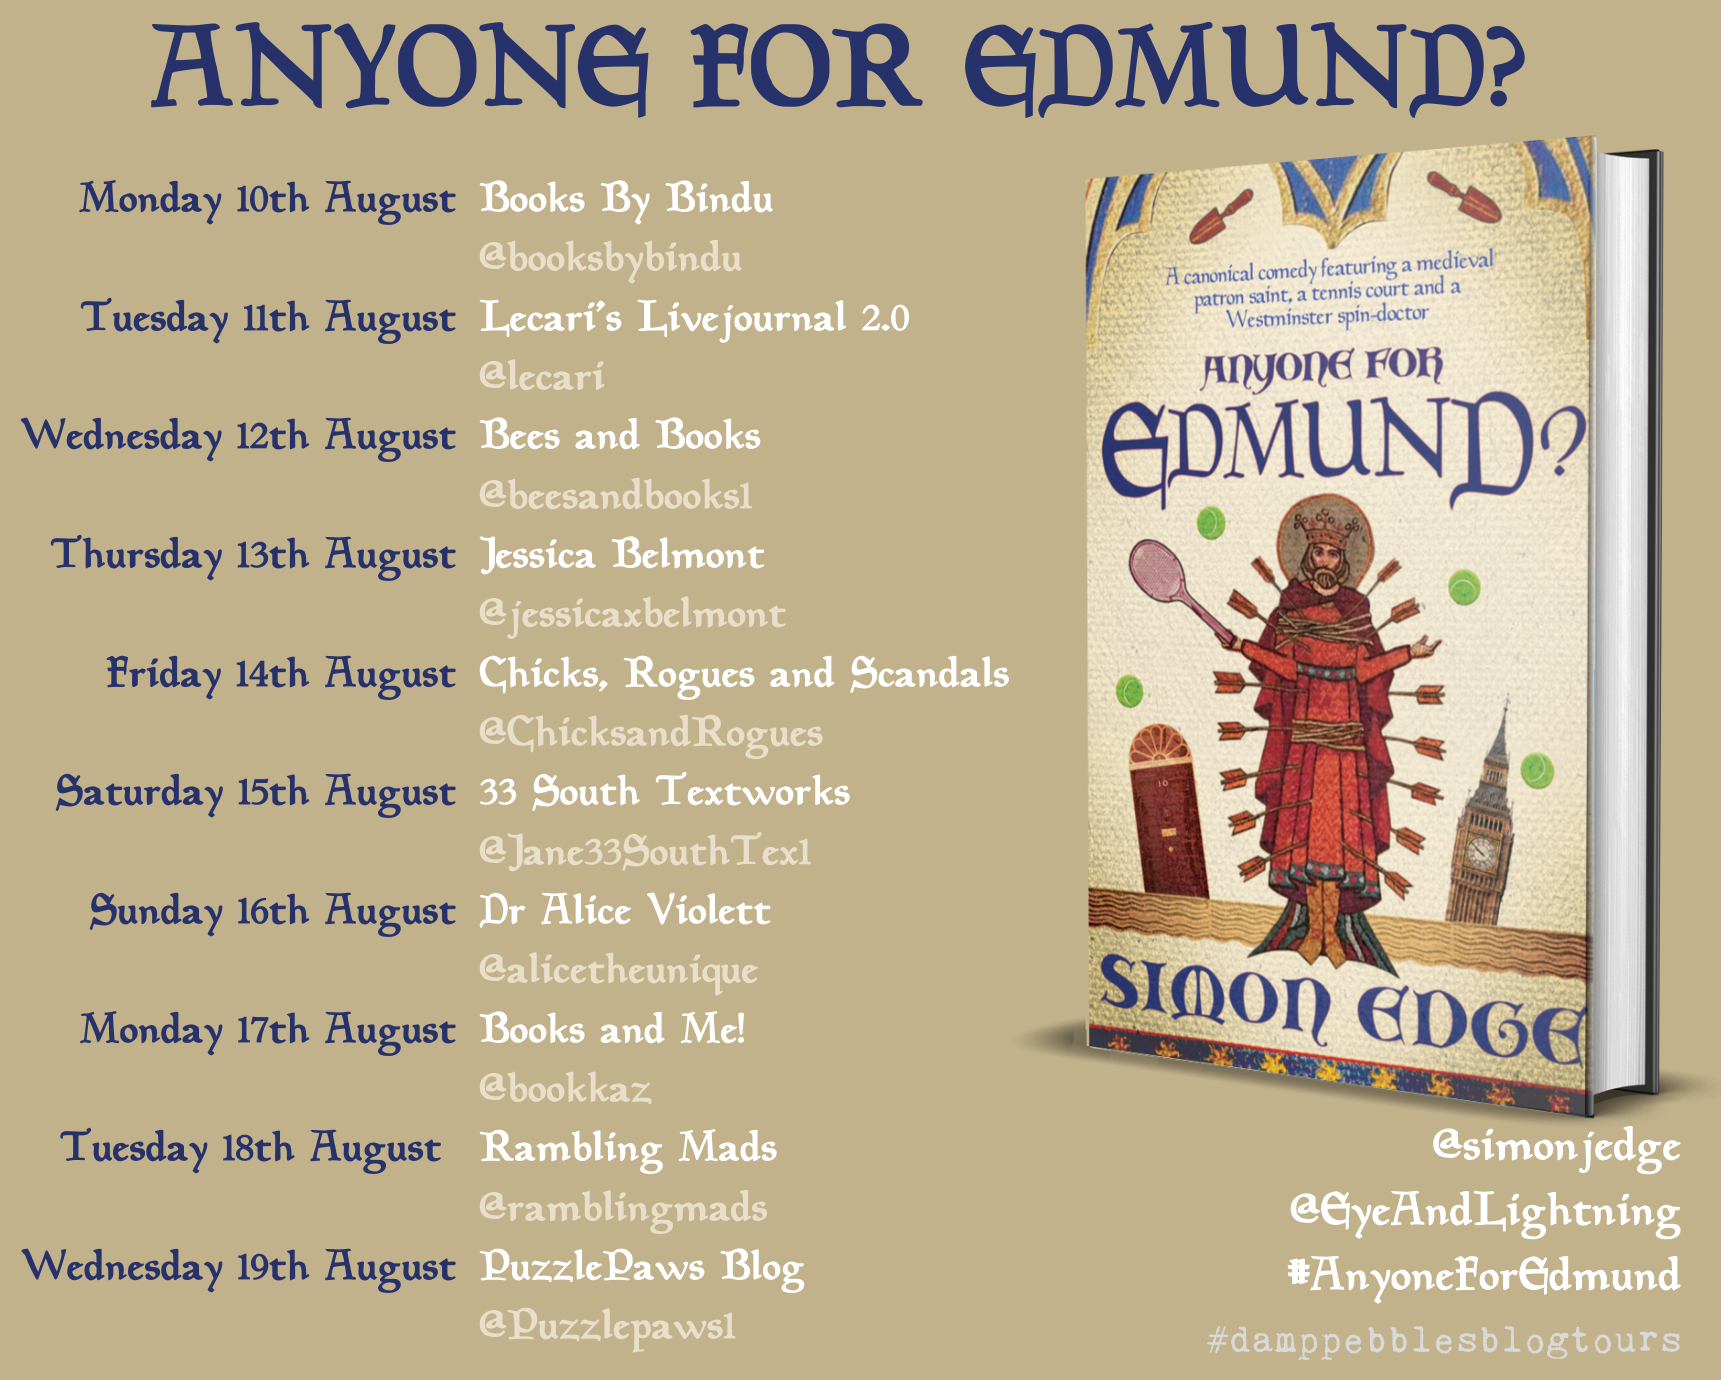 Anyone for Edmund? Blog Tour